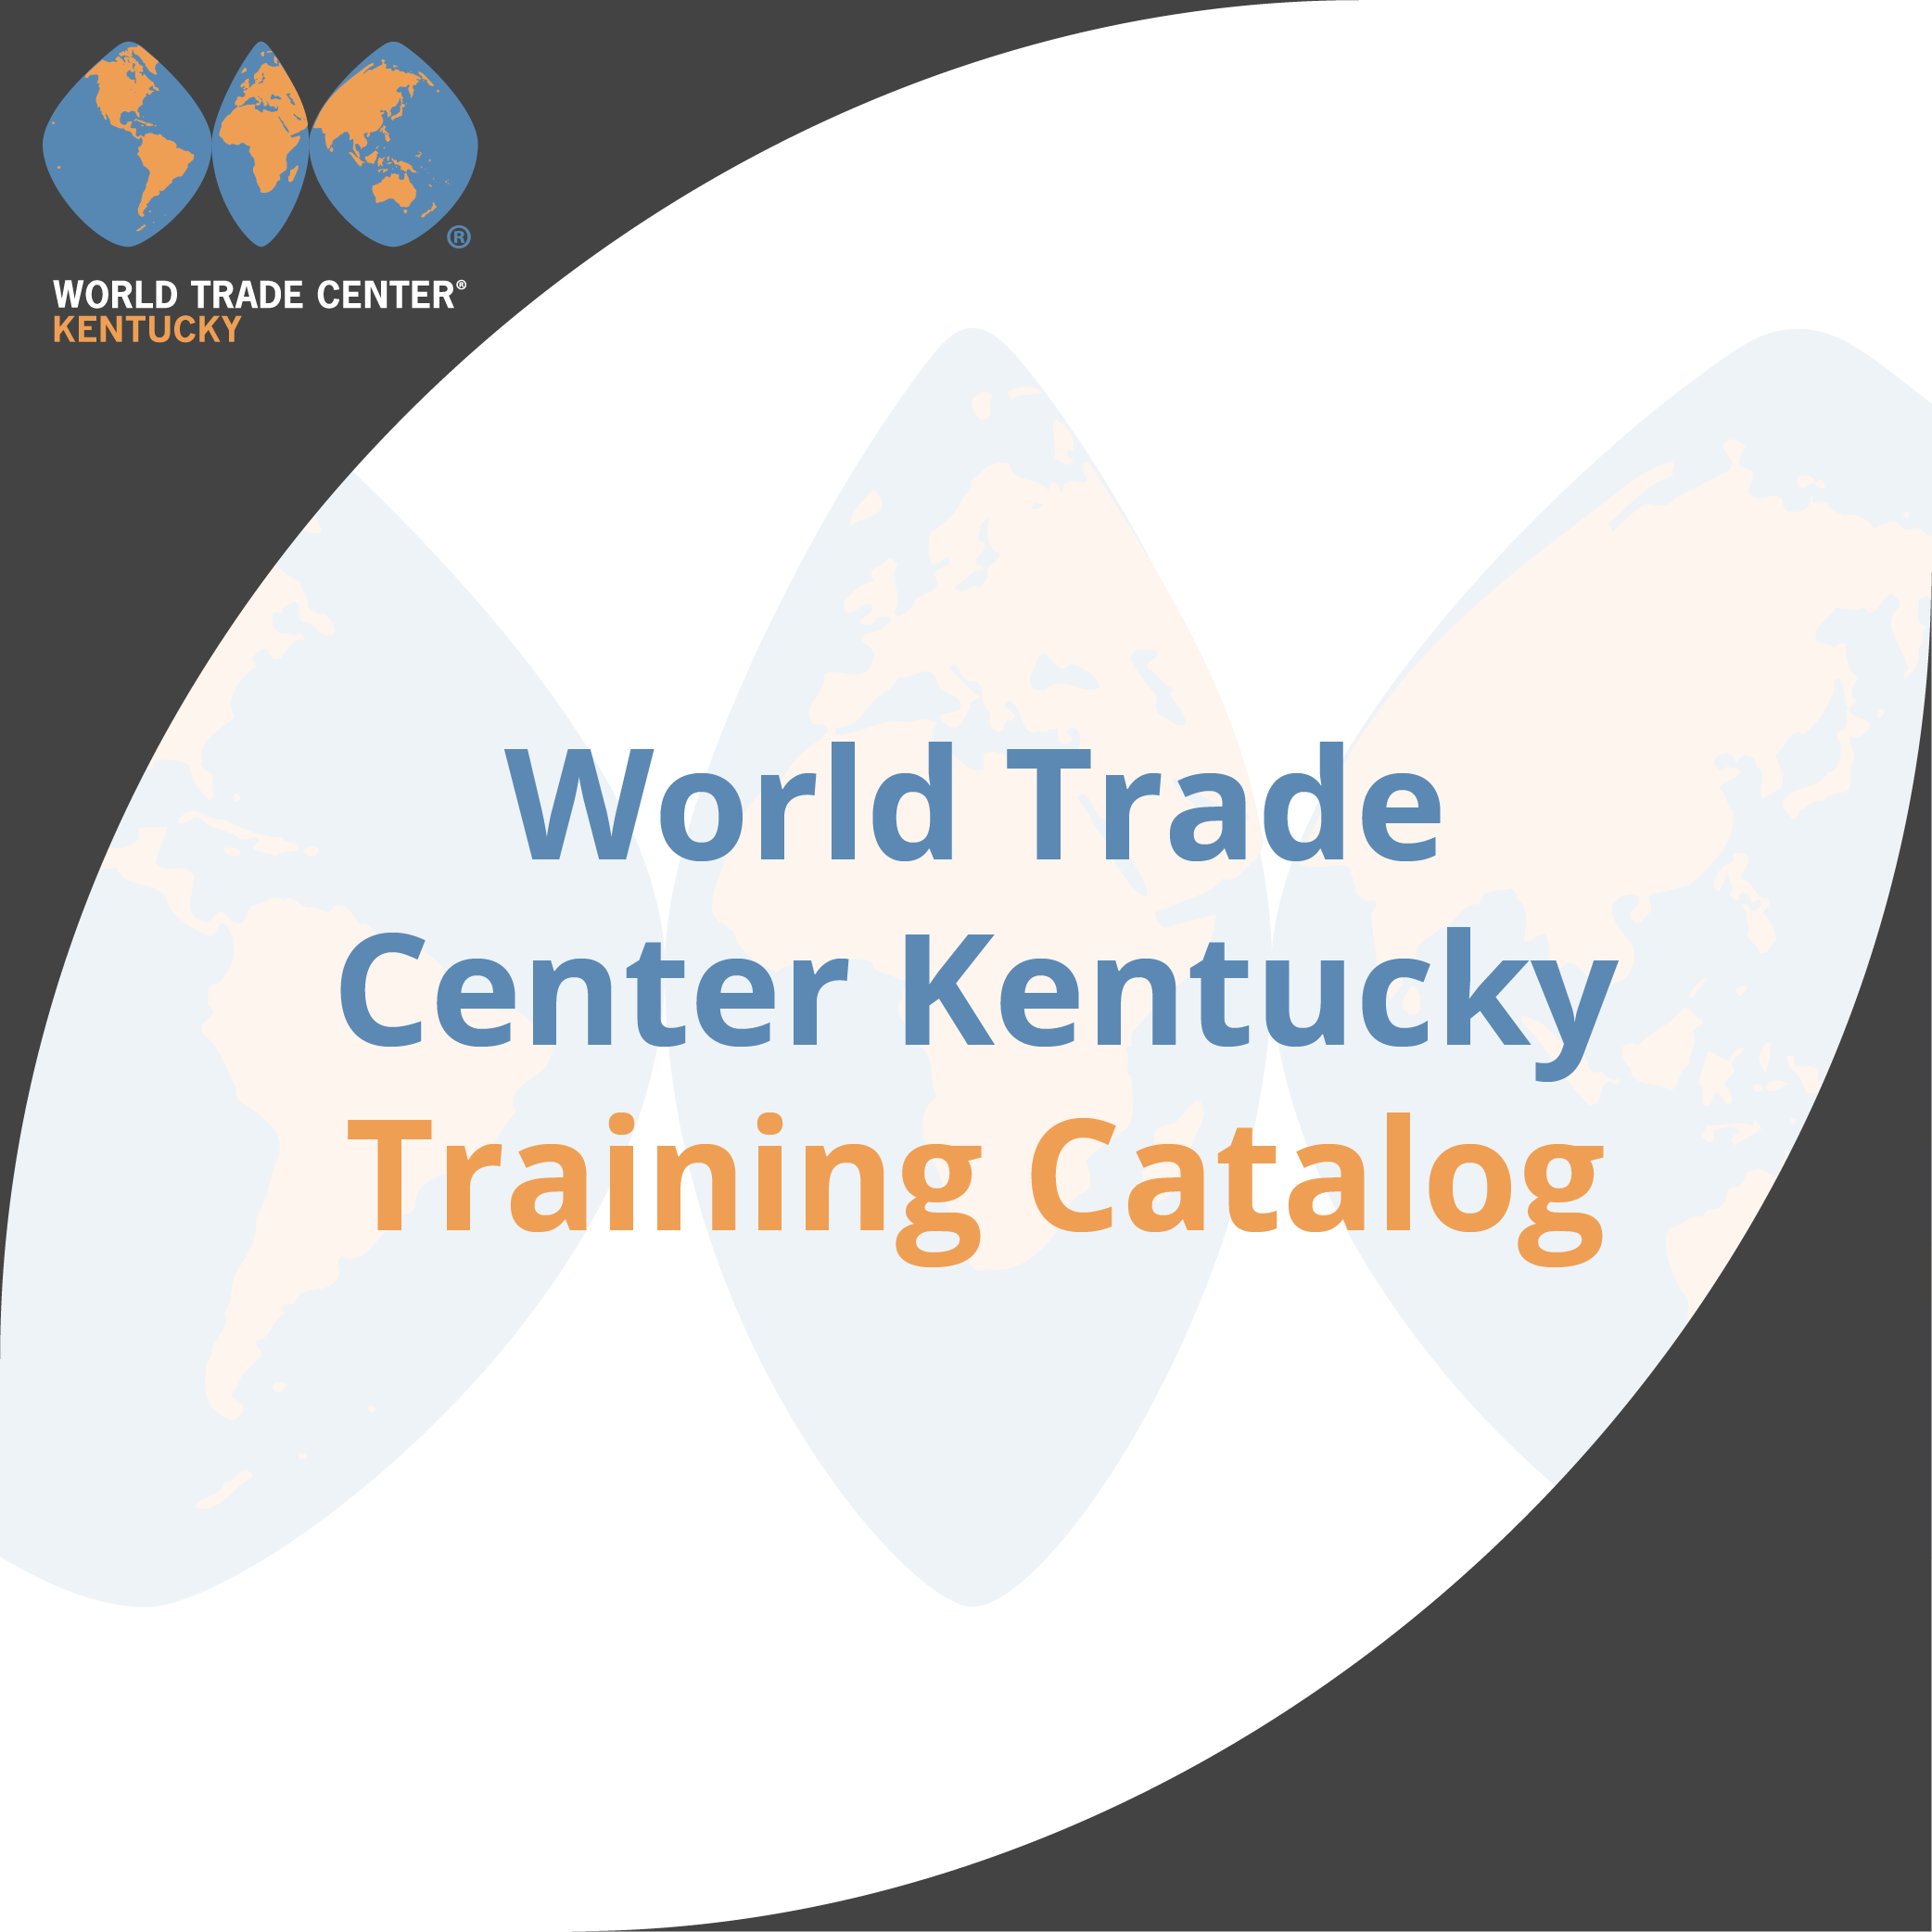 WTC Training Catalog Thumb 200x200-01